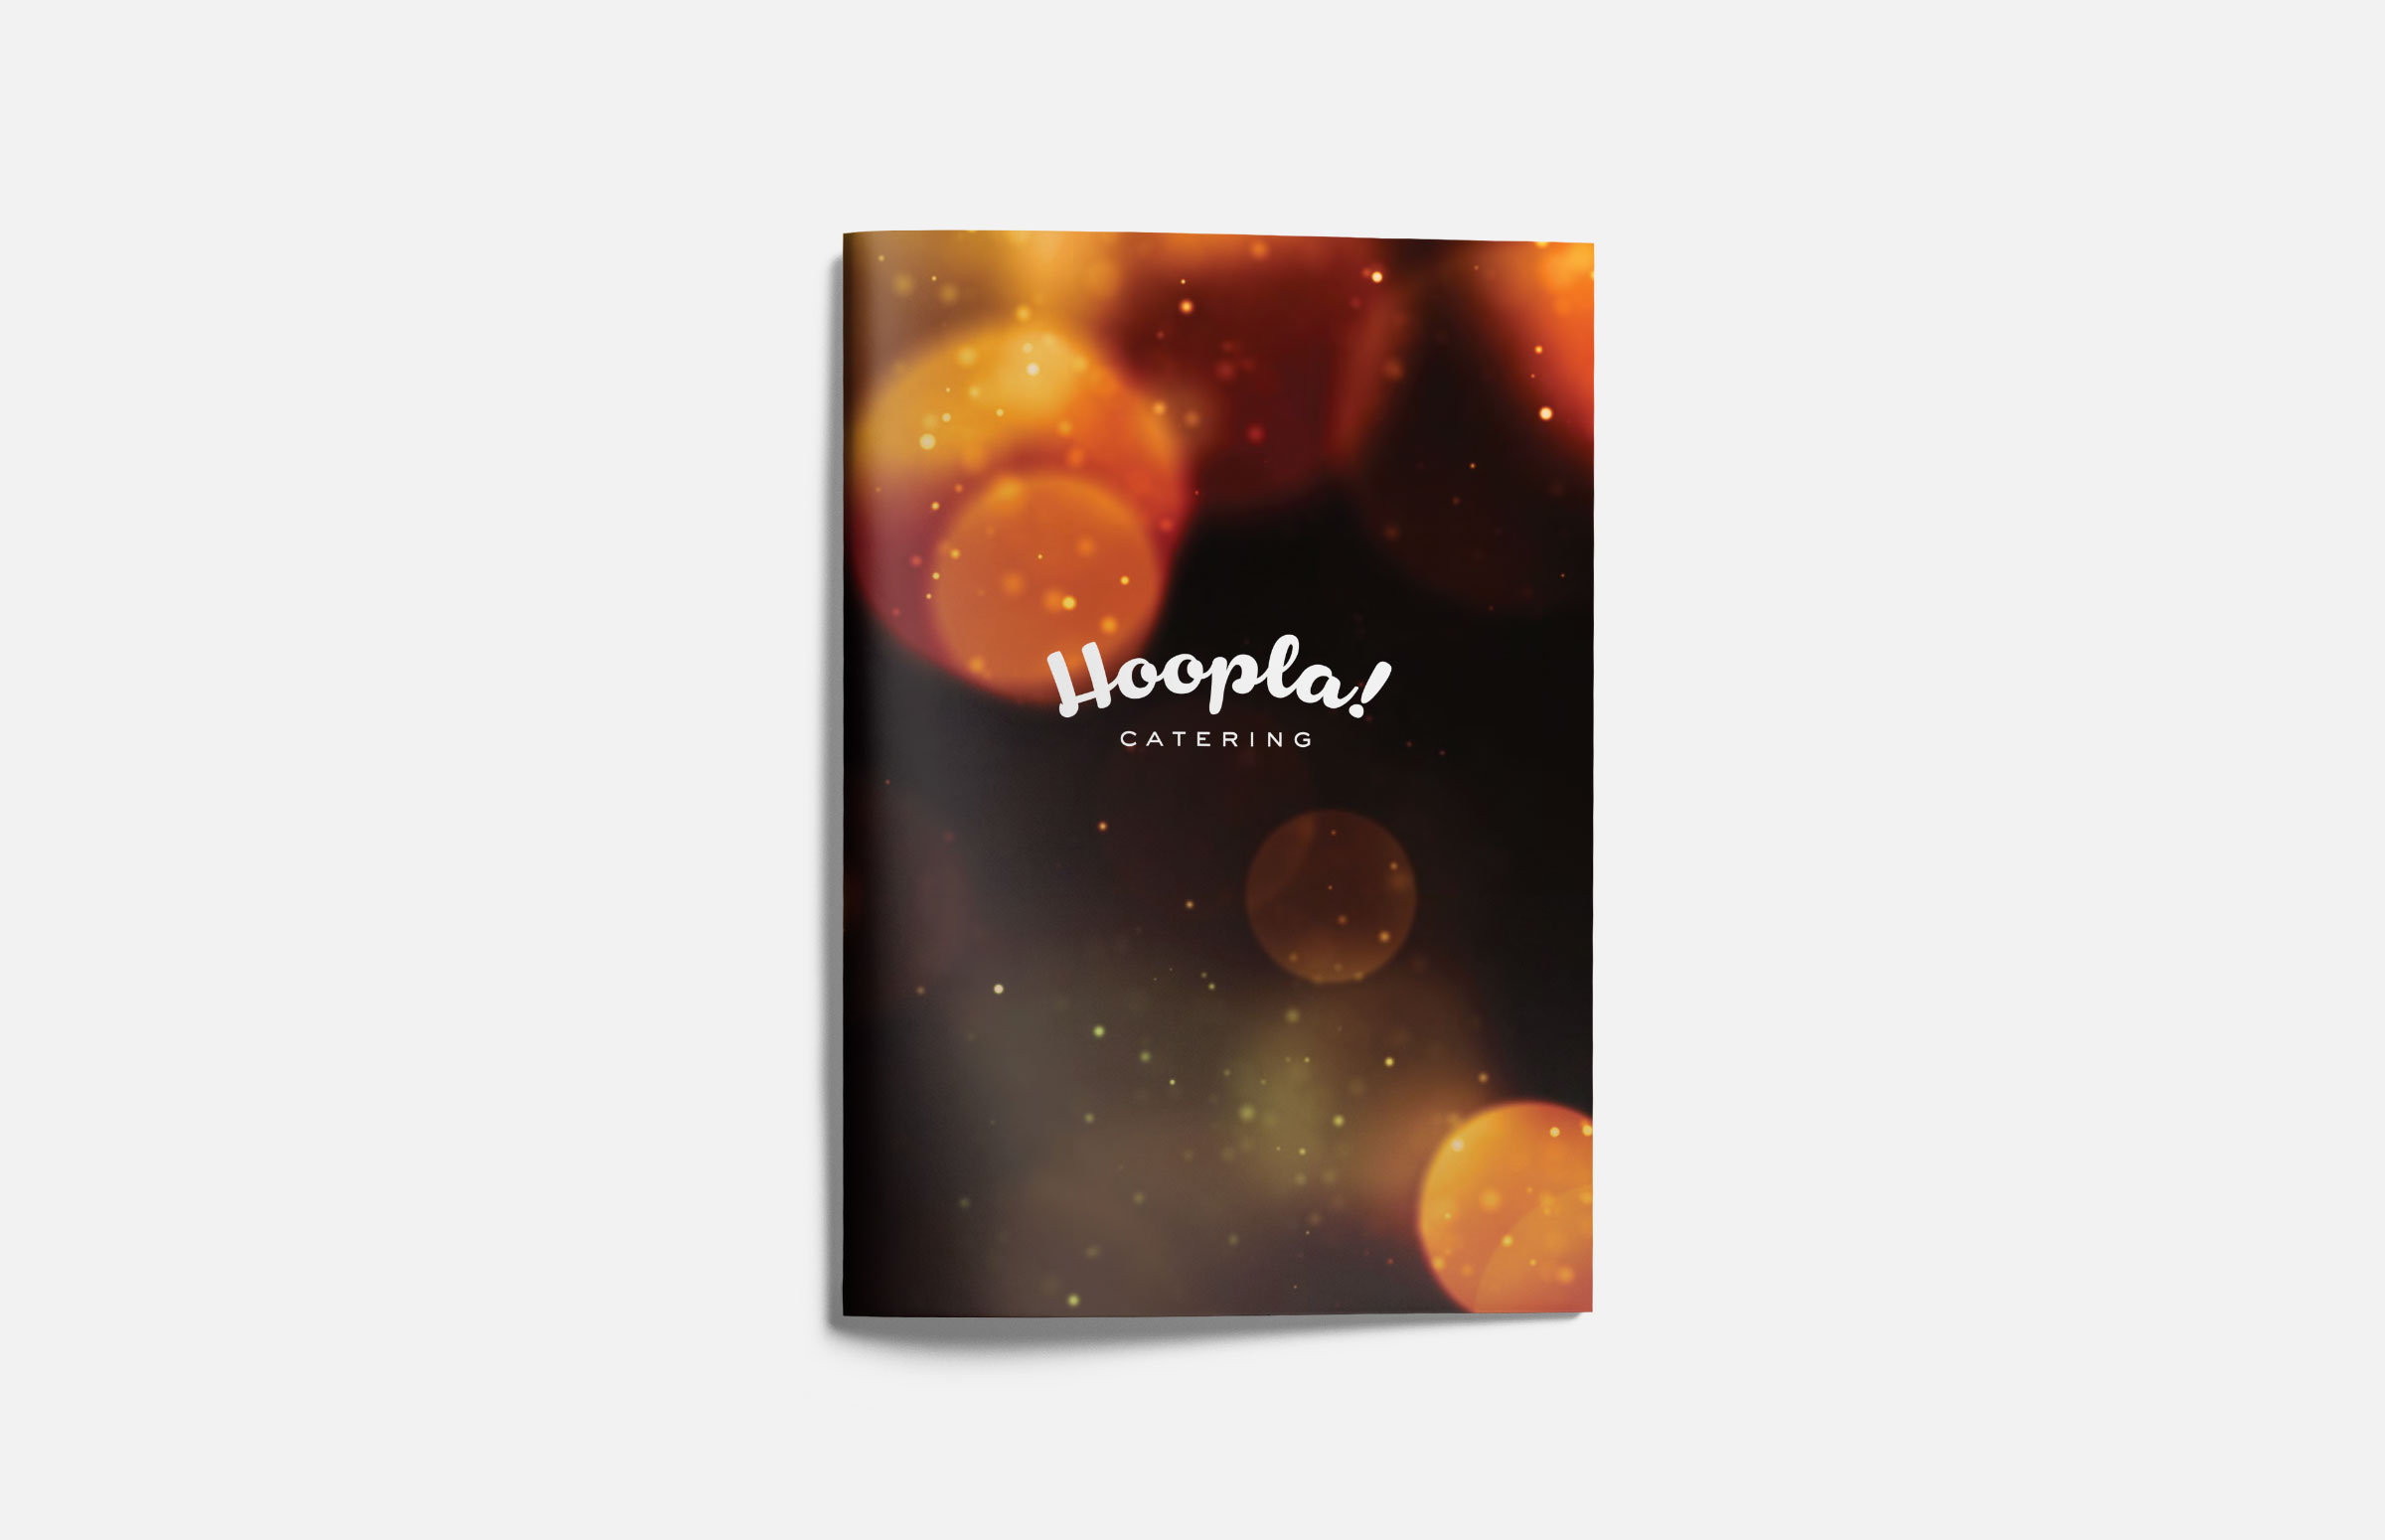 Hoopla! Catering: Informational Booklet Design